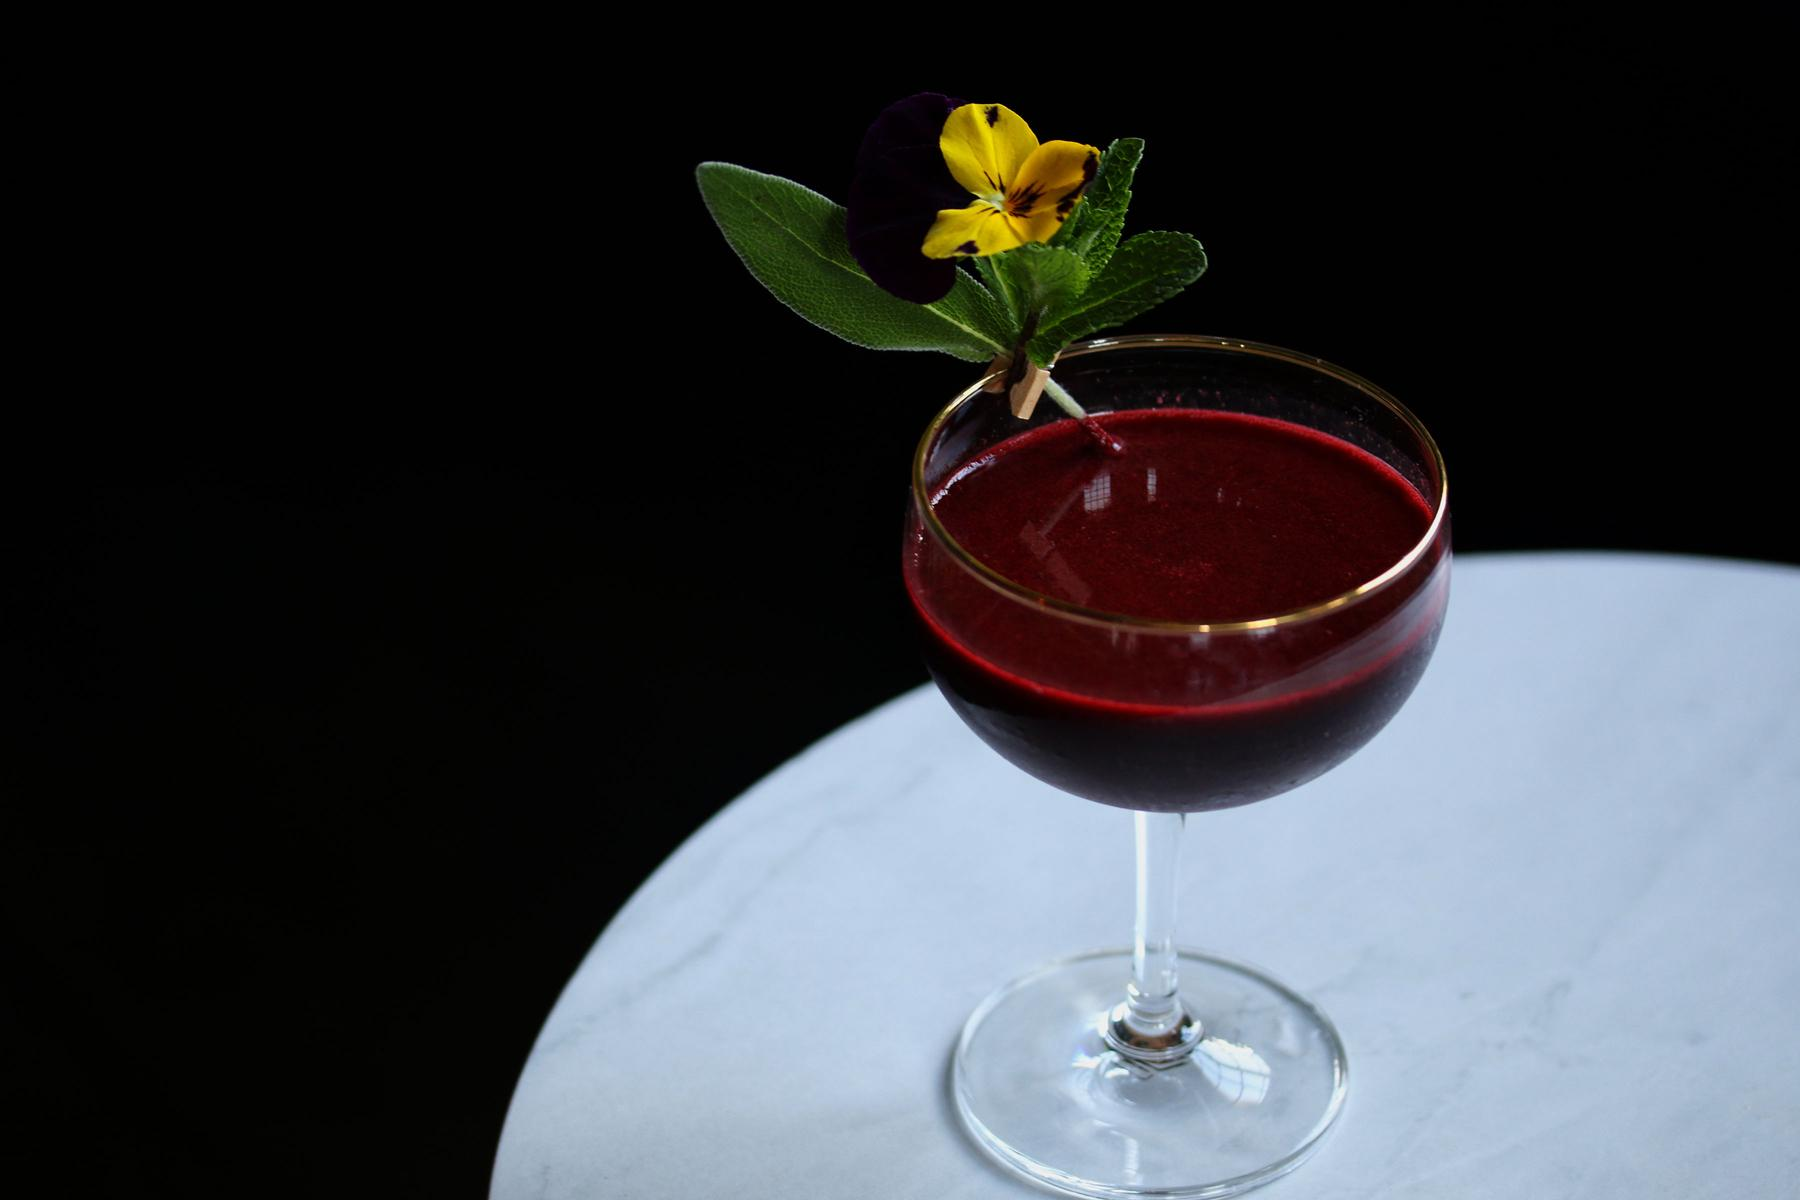 "Blooms of Spring: An exotic beet molasses cocktail, also uses Chopin Rye Vodka, Green Chartreuse and Persian lime. ""Cold Winter views and his realms of snow, Delaney's vegetable statues blow, smooths his stern brow, delays his hoary wing, and eyes with wonder all the blooms of spring."" (Image: Jai Williams)"